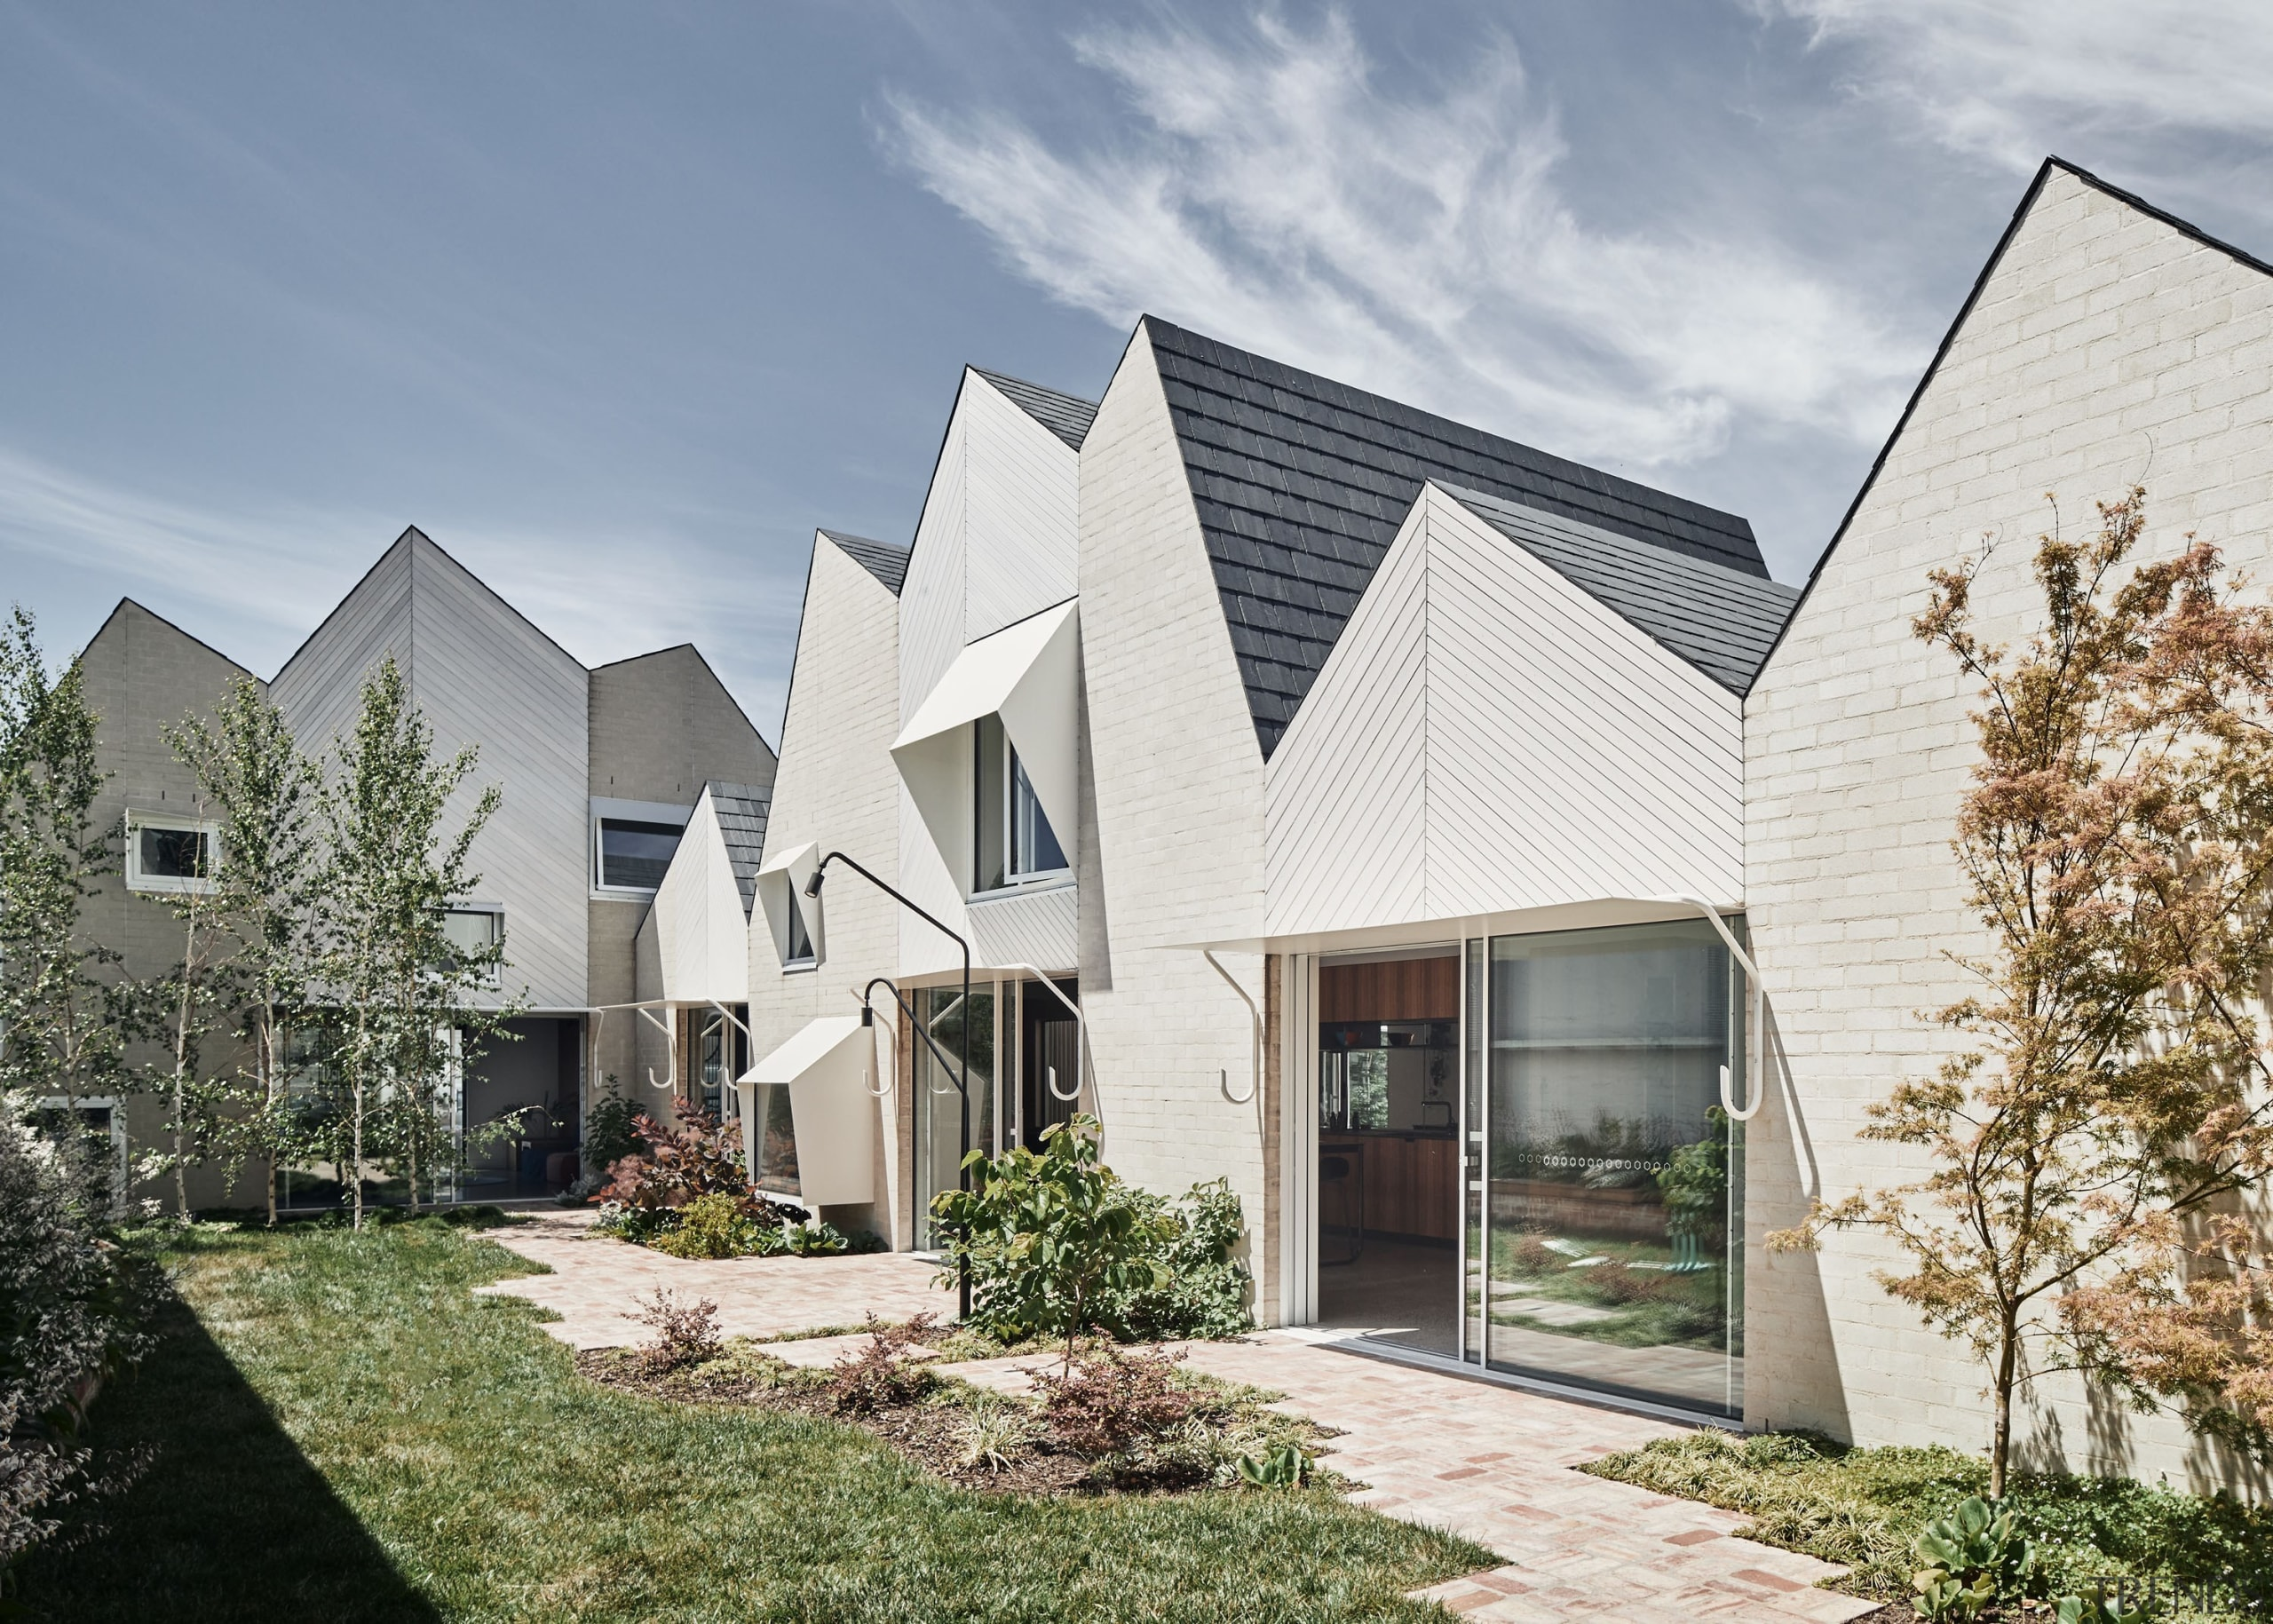 RaeRae's mountain roof form is shaped through context gray, white